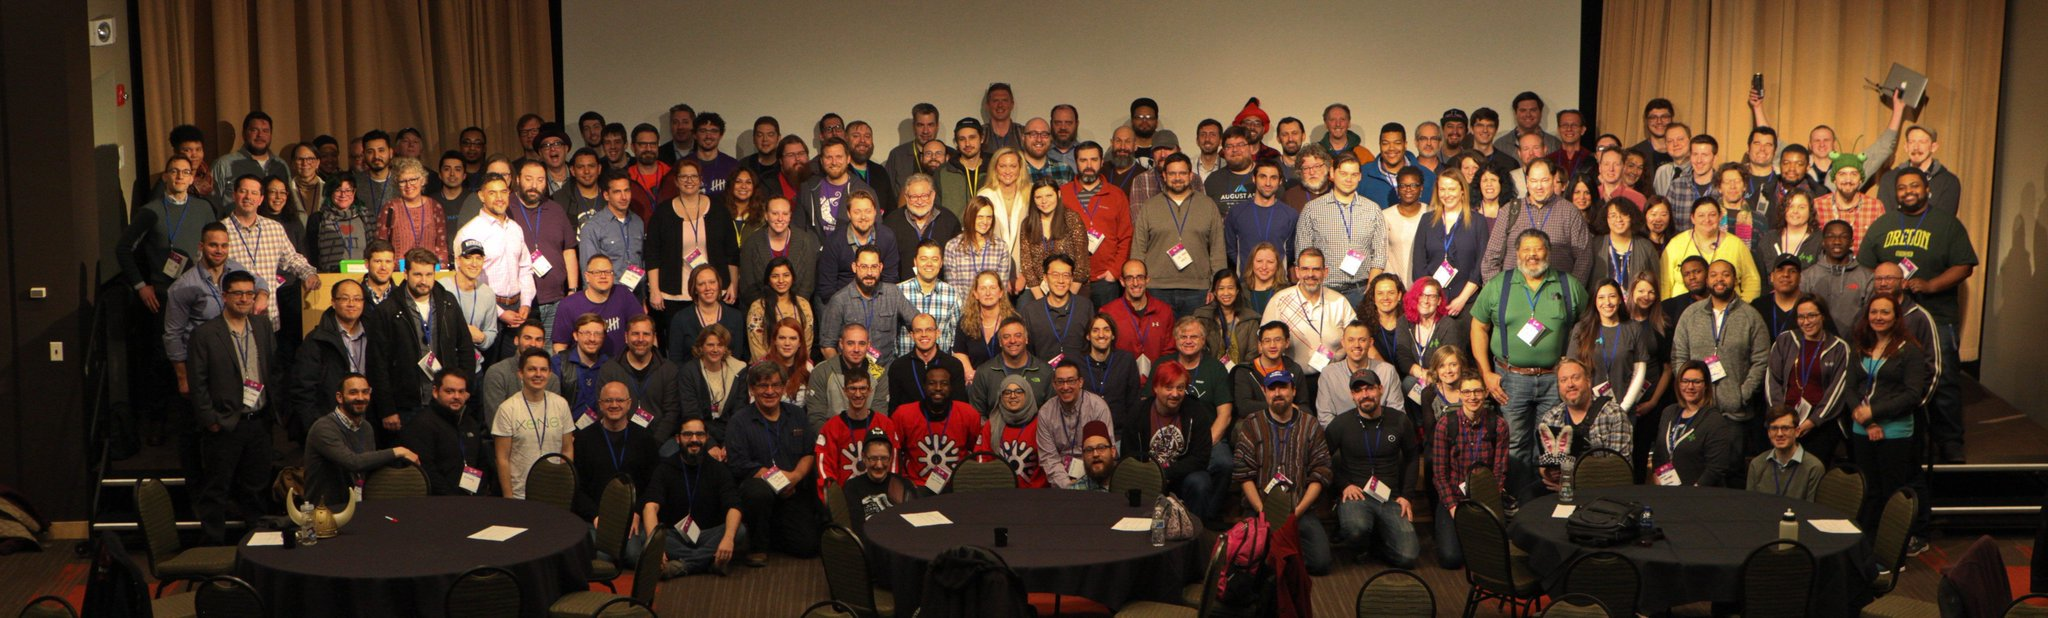 MidCamp Group